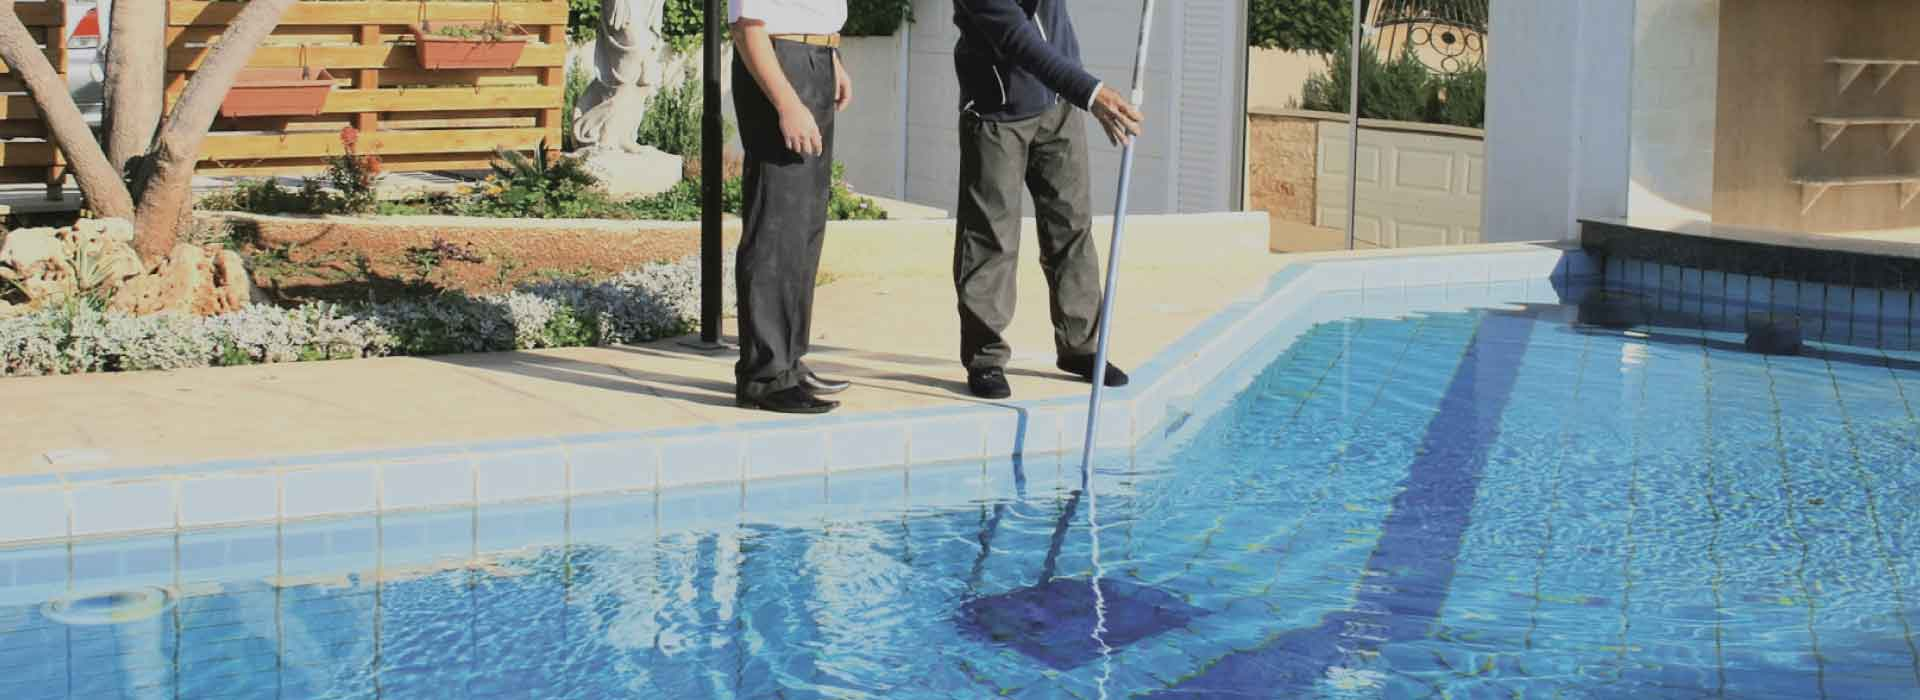 pool service houston get a free month of pool service